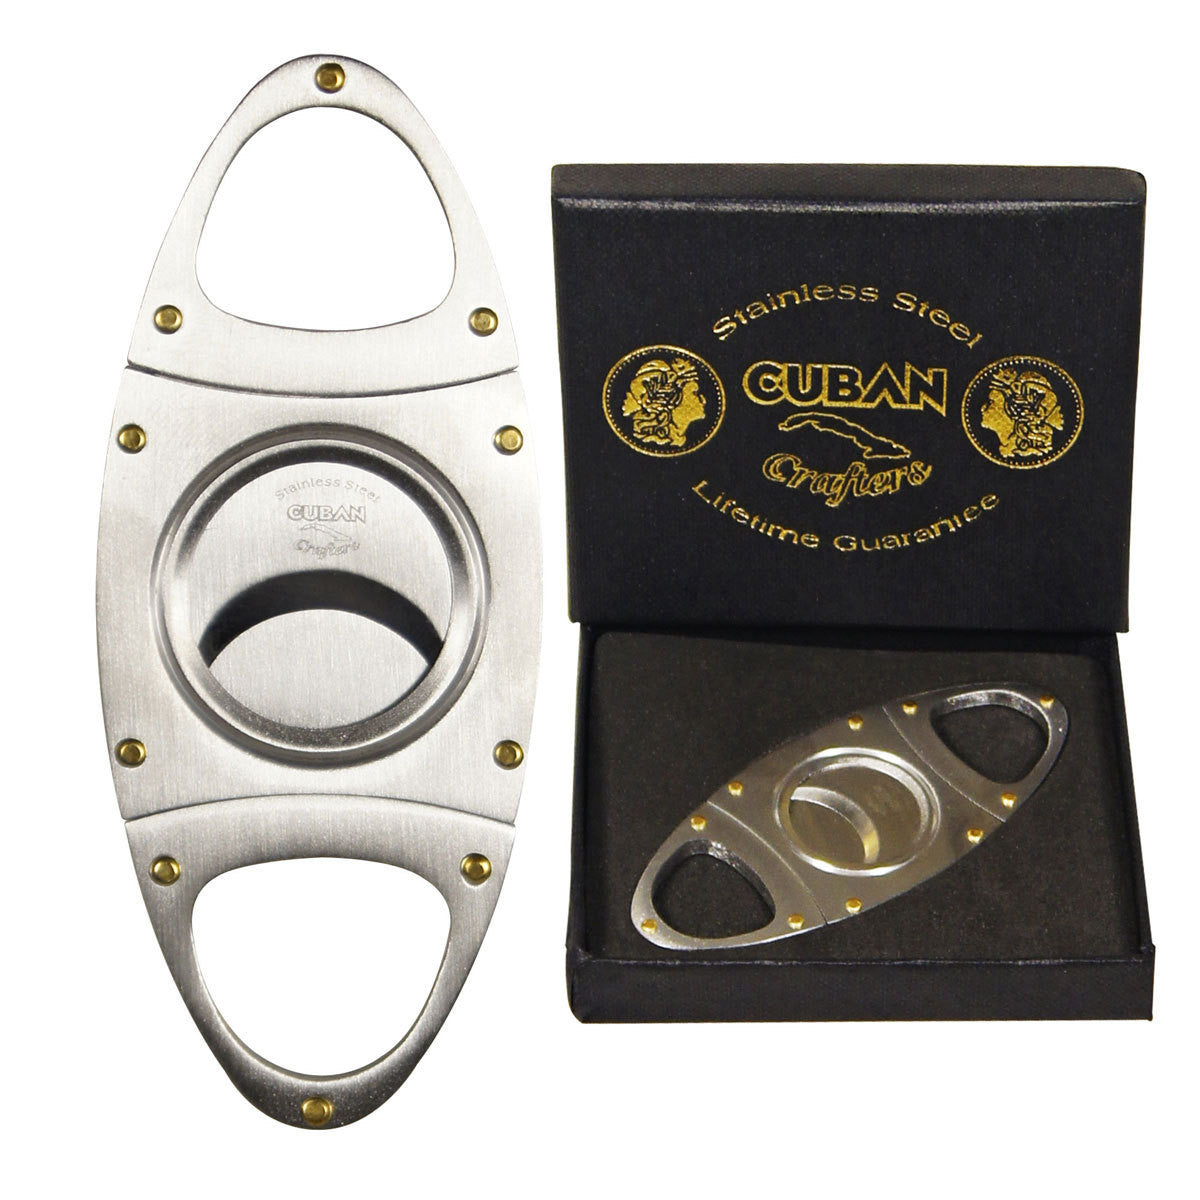 Cigar Cutters Wholesale Cuban Crafters Double Stainless Steel Blades U Handles - Humidors Wholesaler